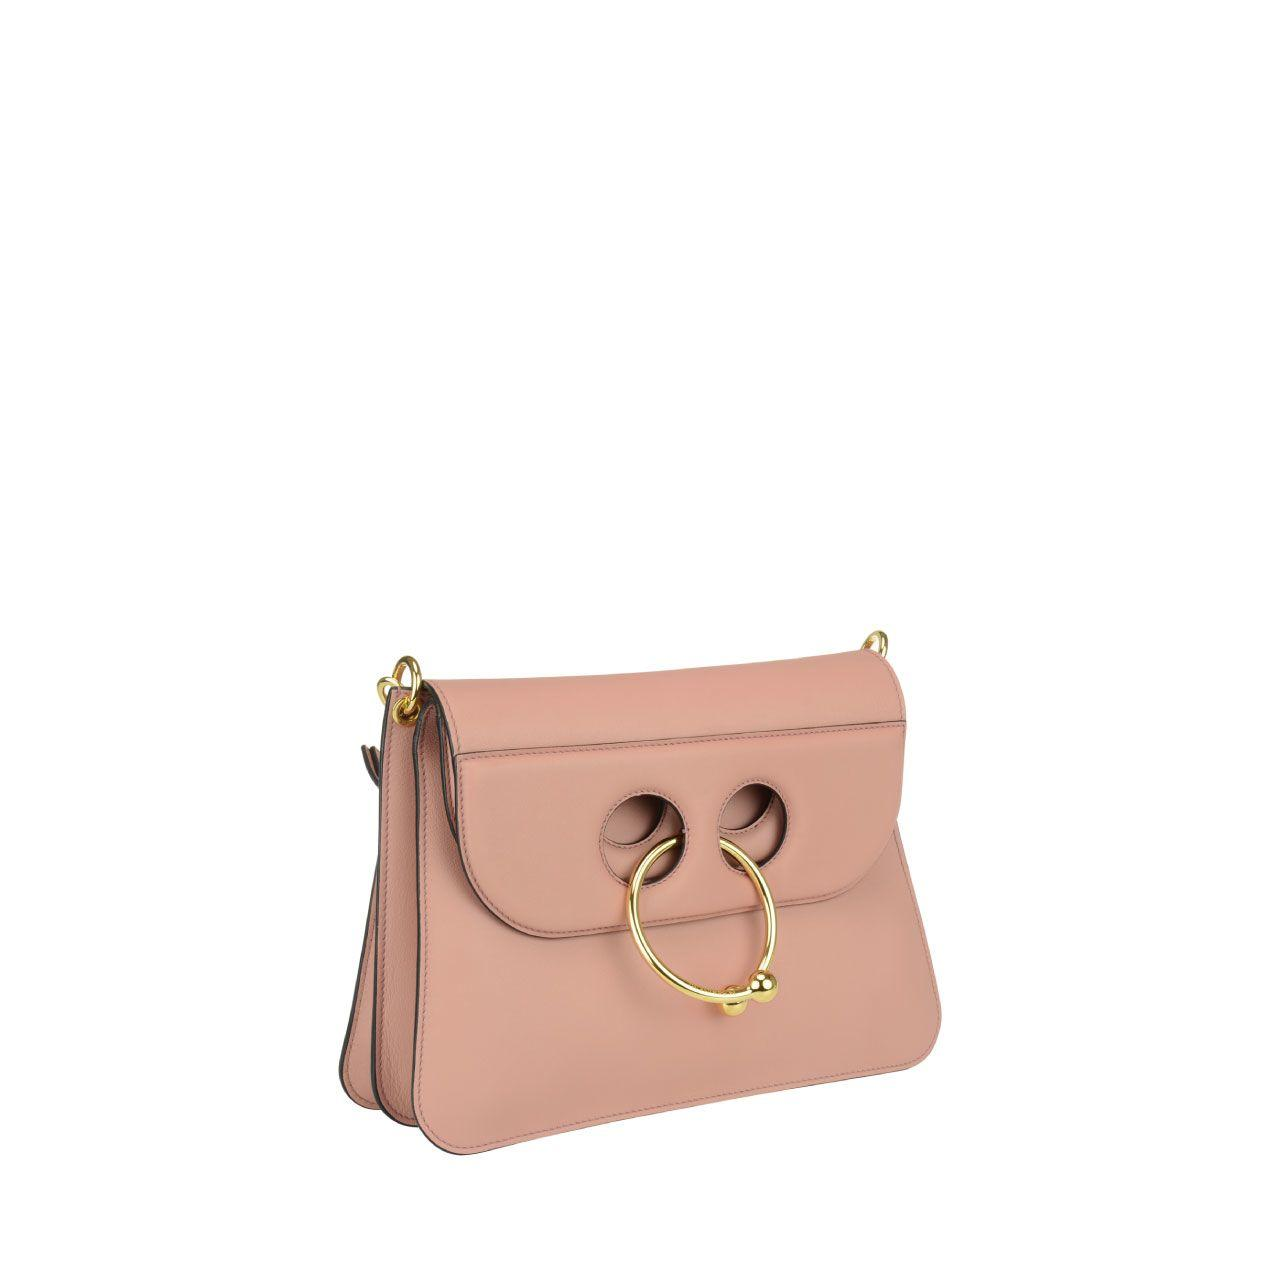 J.W.Anderson J.W. Anderson Medium Pierce Bag In Dusty Rose